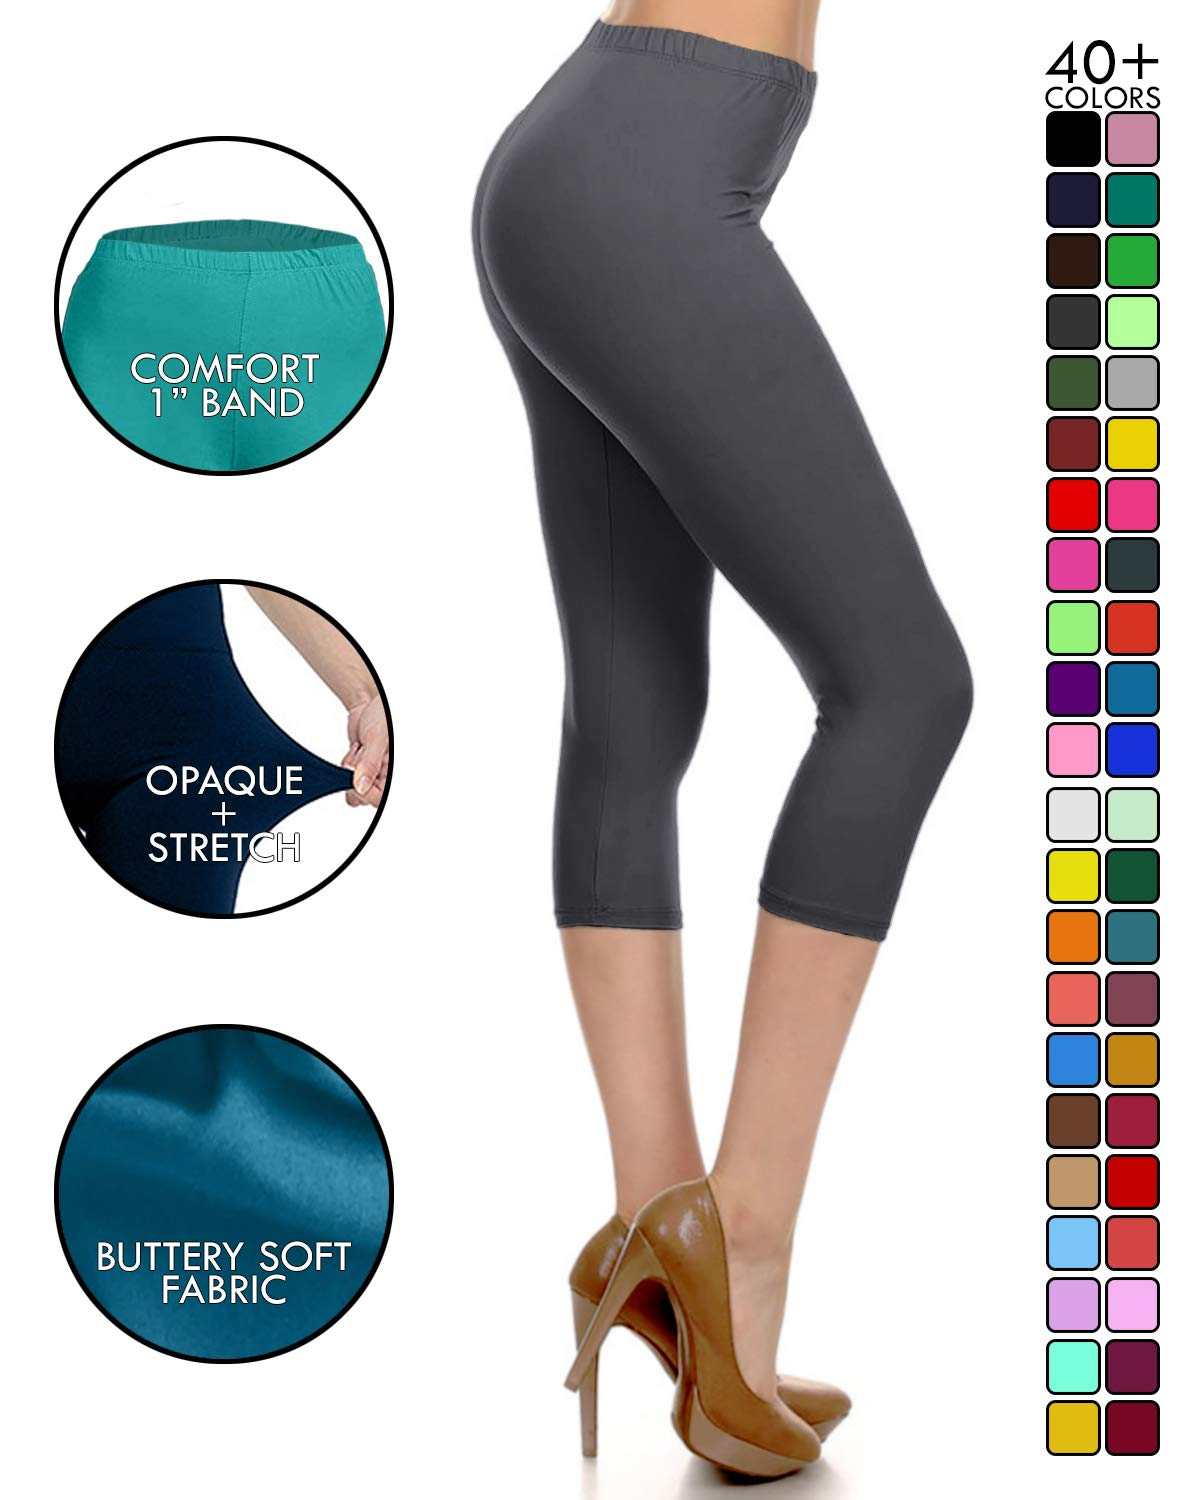 82838e041192c Leggings Depot High Waisted Capri Leggings - Soft & Slim - 37+ Colors  product image